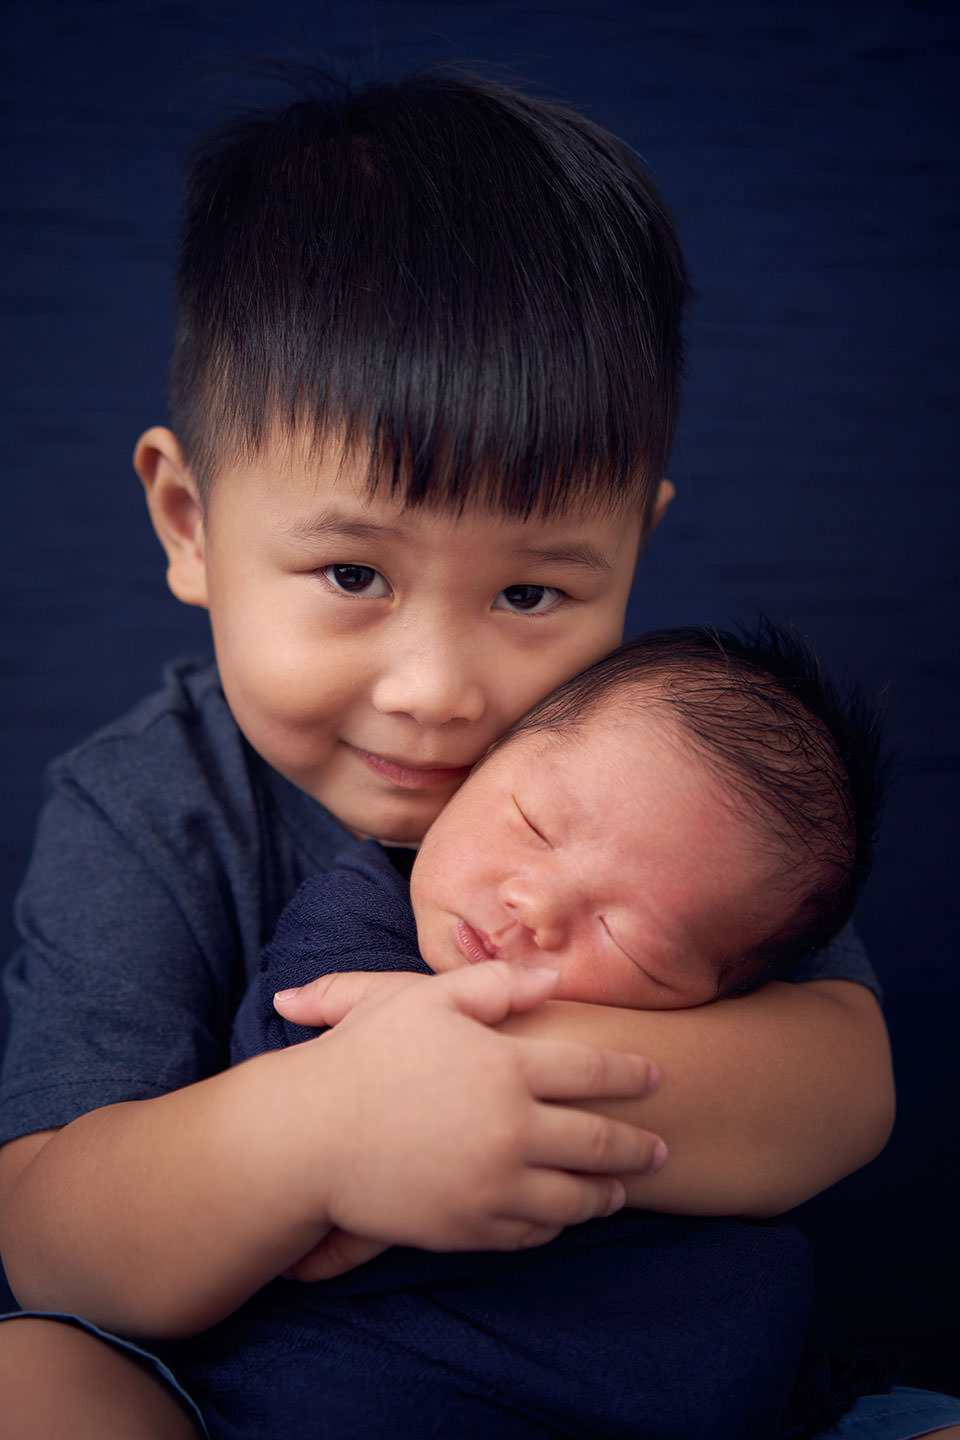 newborn with sibling photoshoot